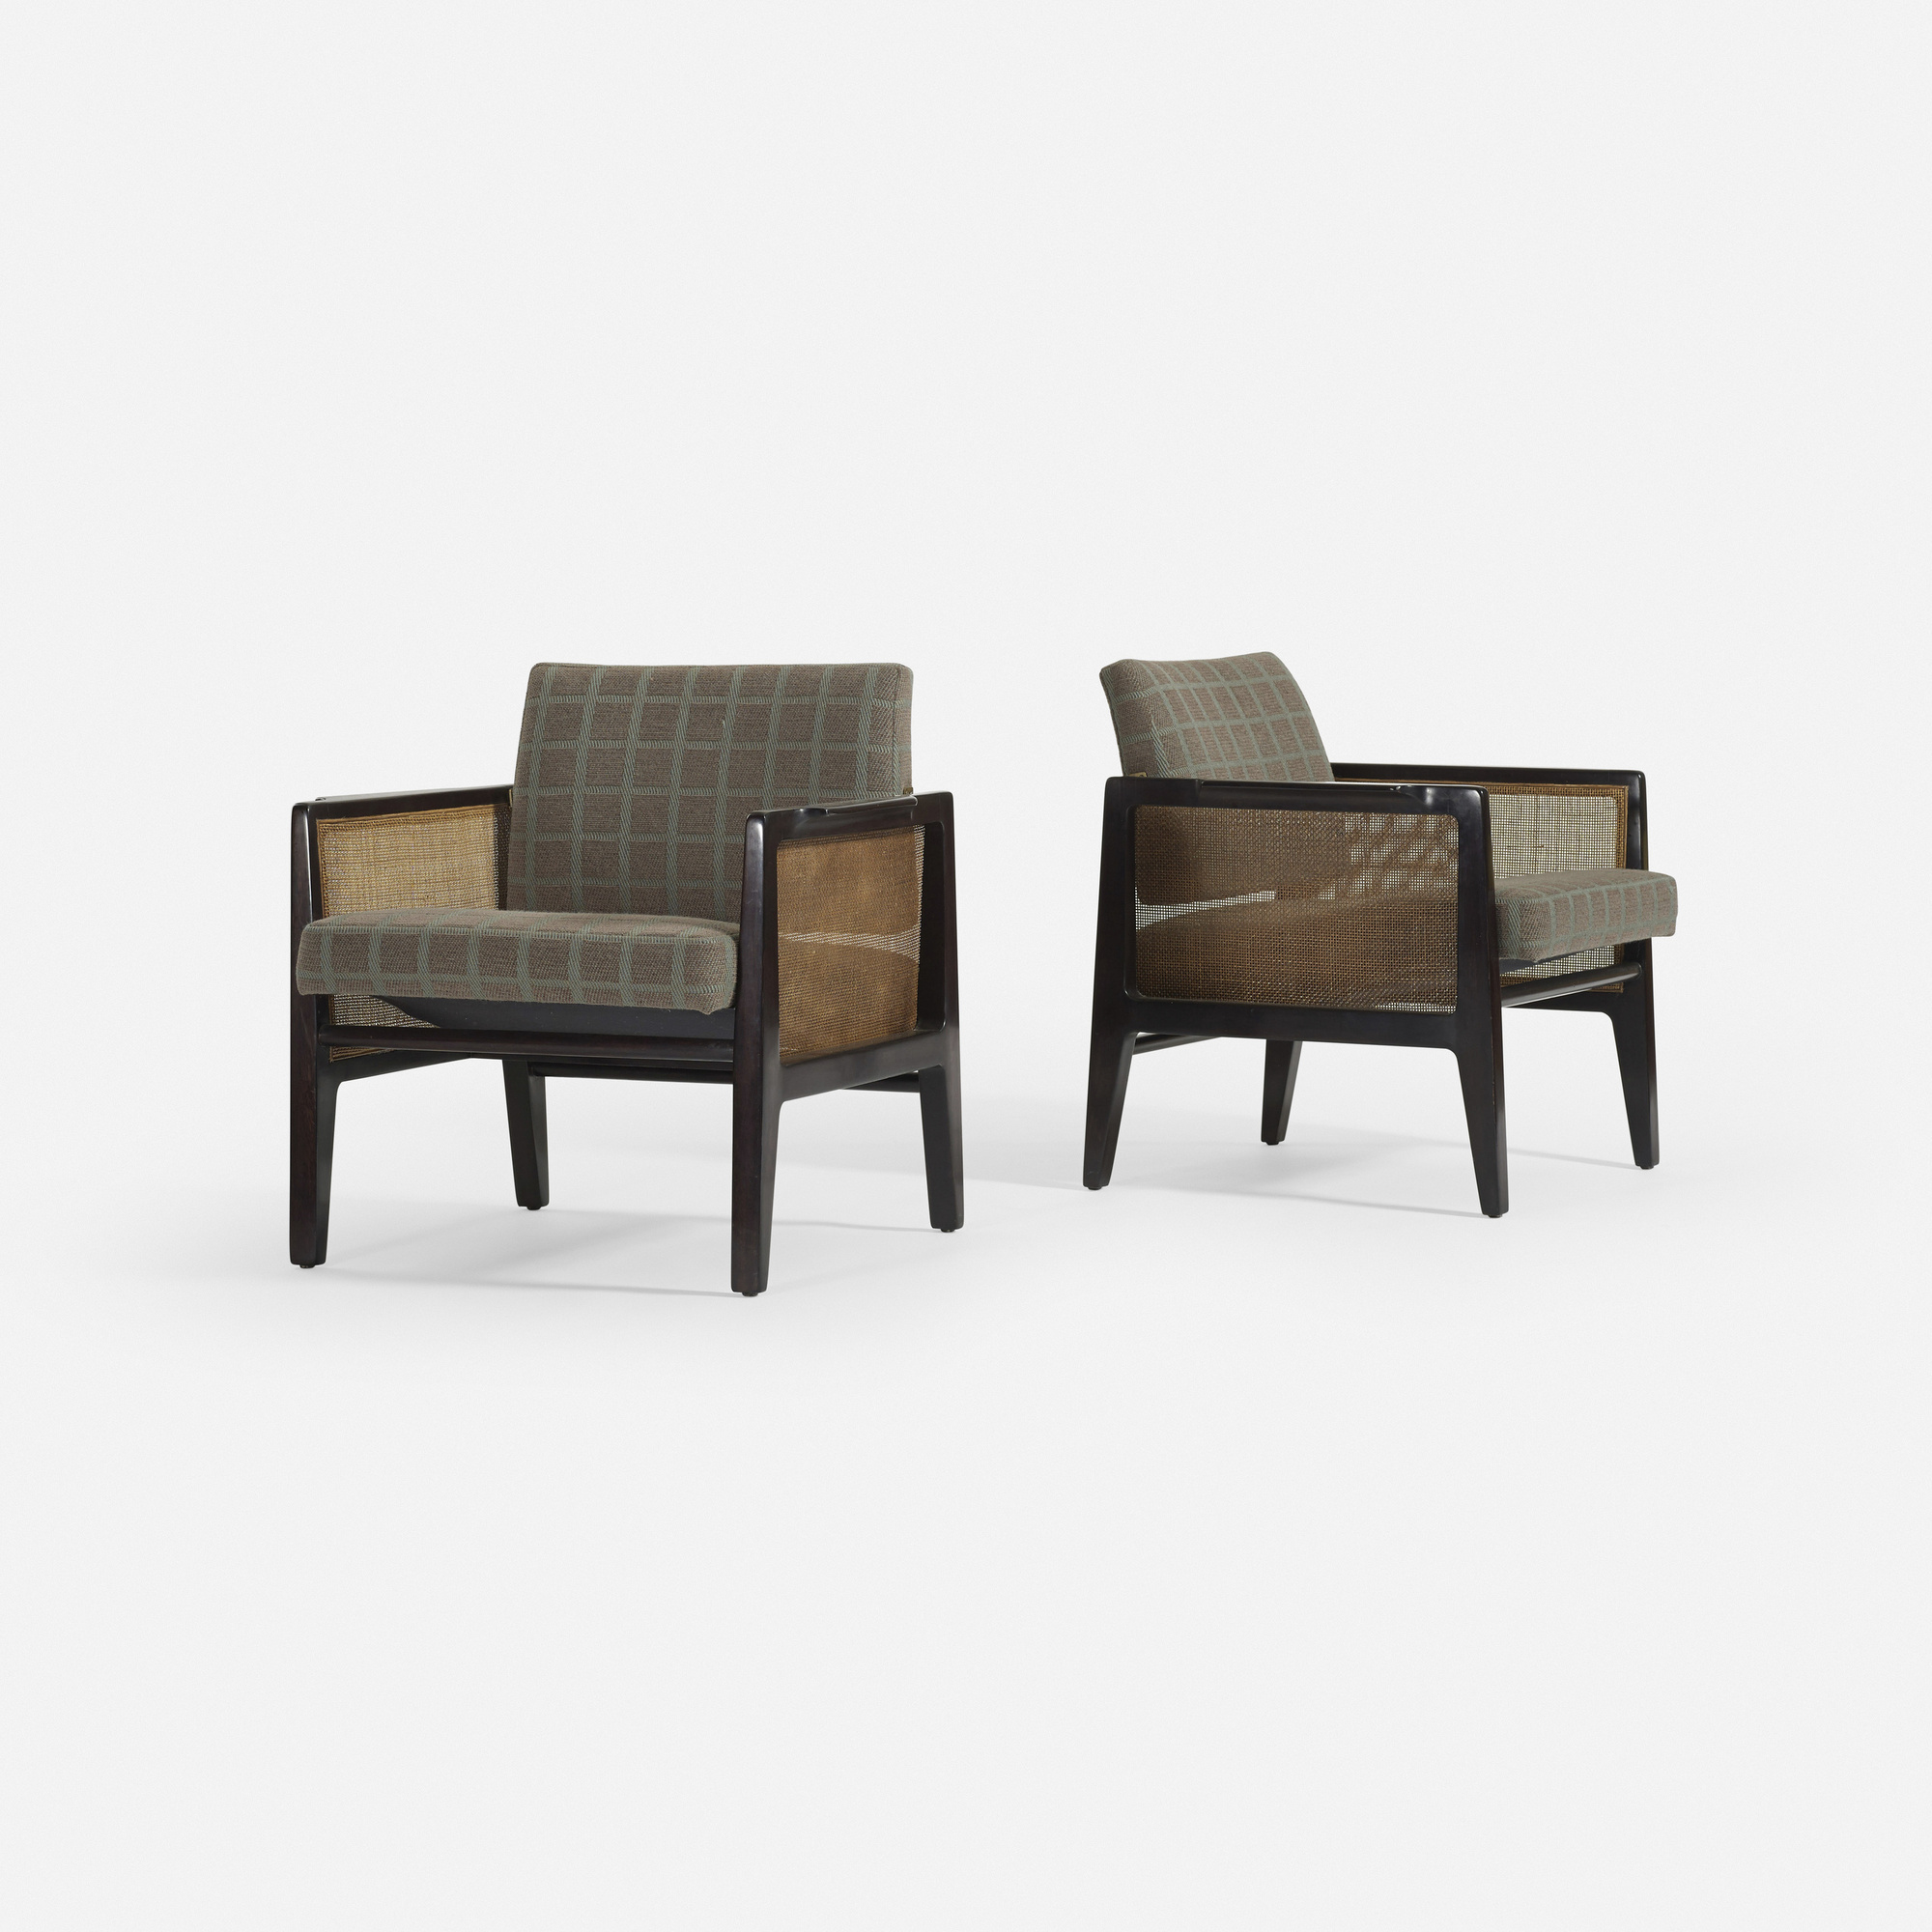 123: Edward Wormley / armchairs model 5513, pair (2 of 4)